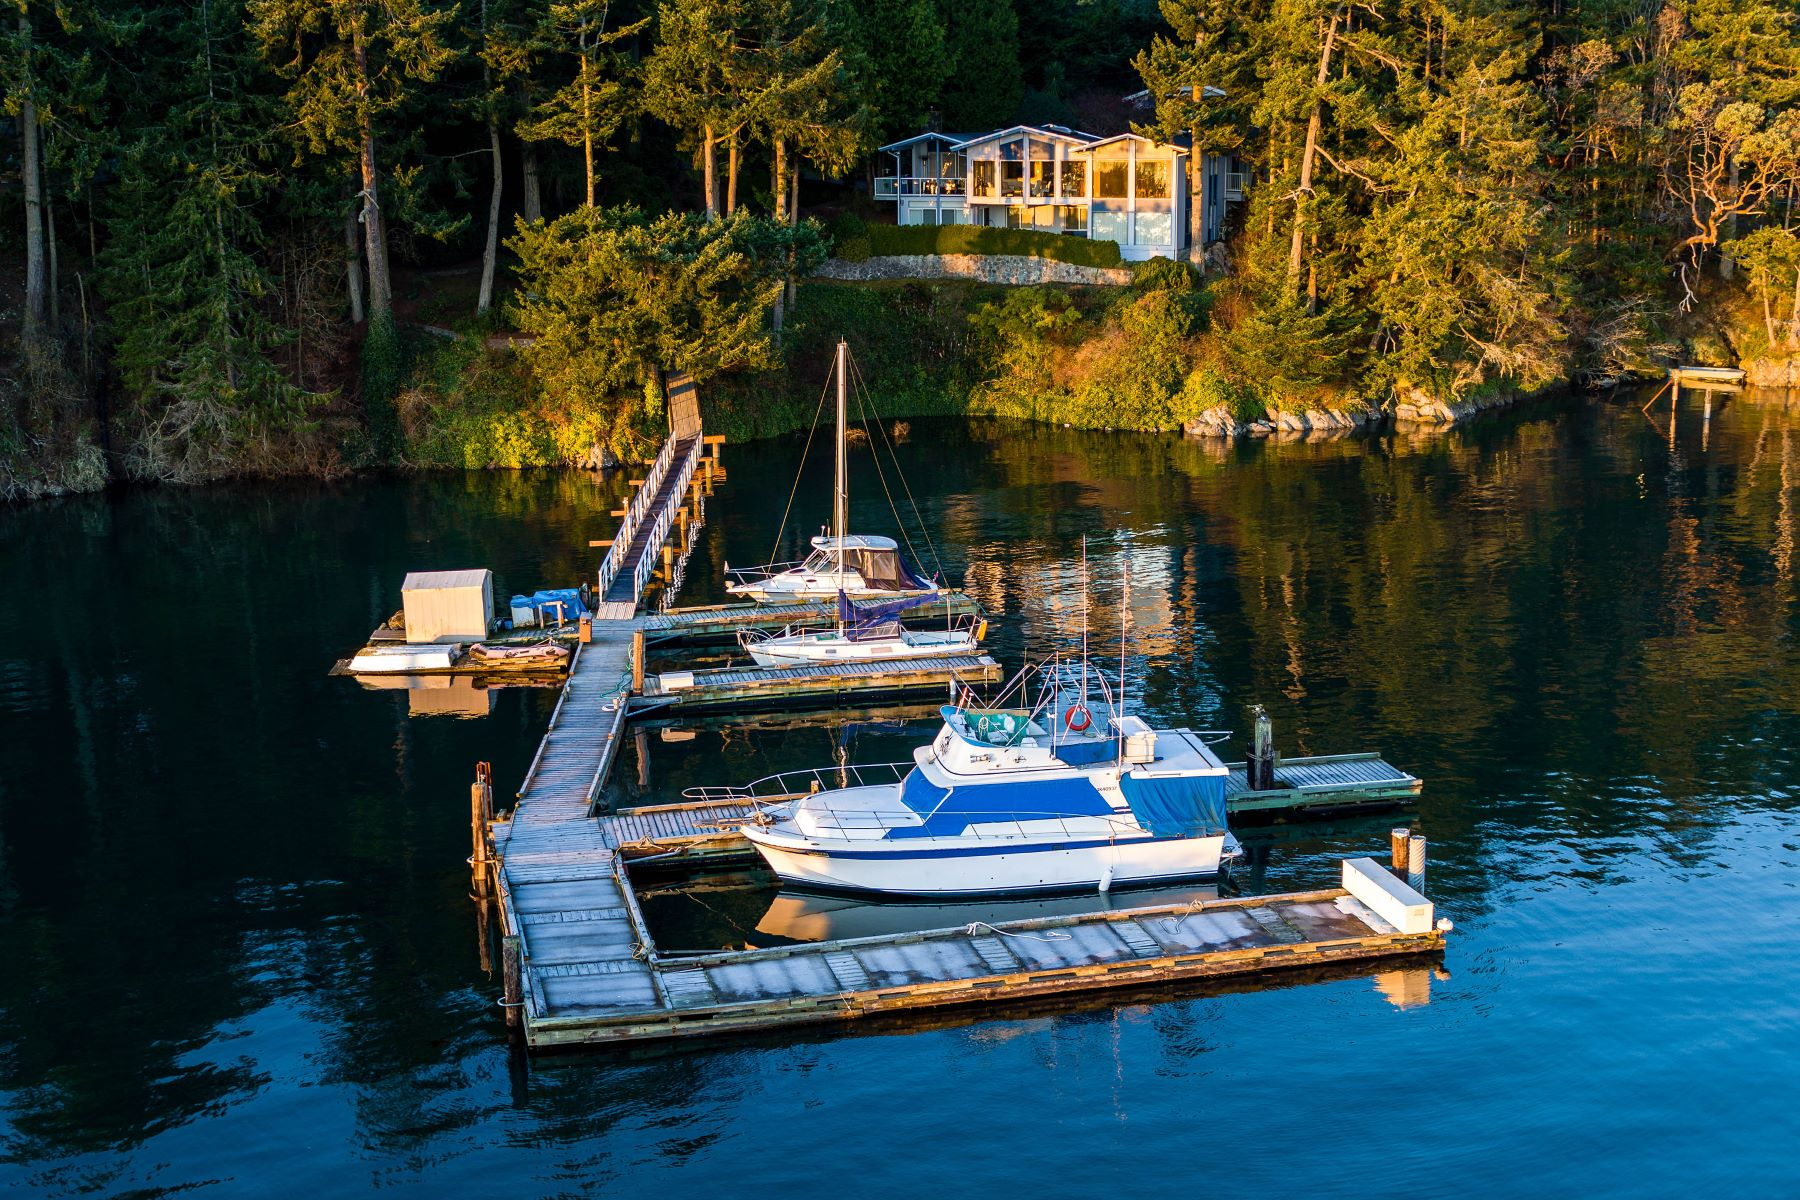 Property for Sale at Boaters Paradise 2290 Kedge Anchor Road North Saanich, British Columbia V8L 5J1 Canada